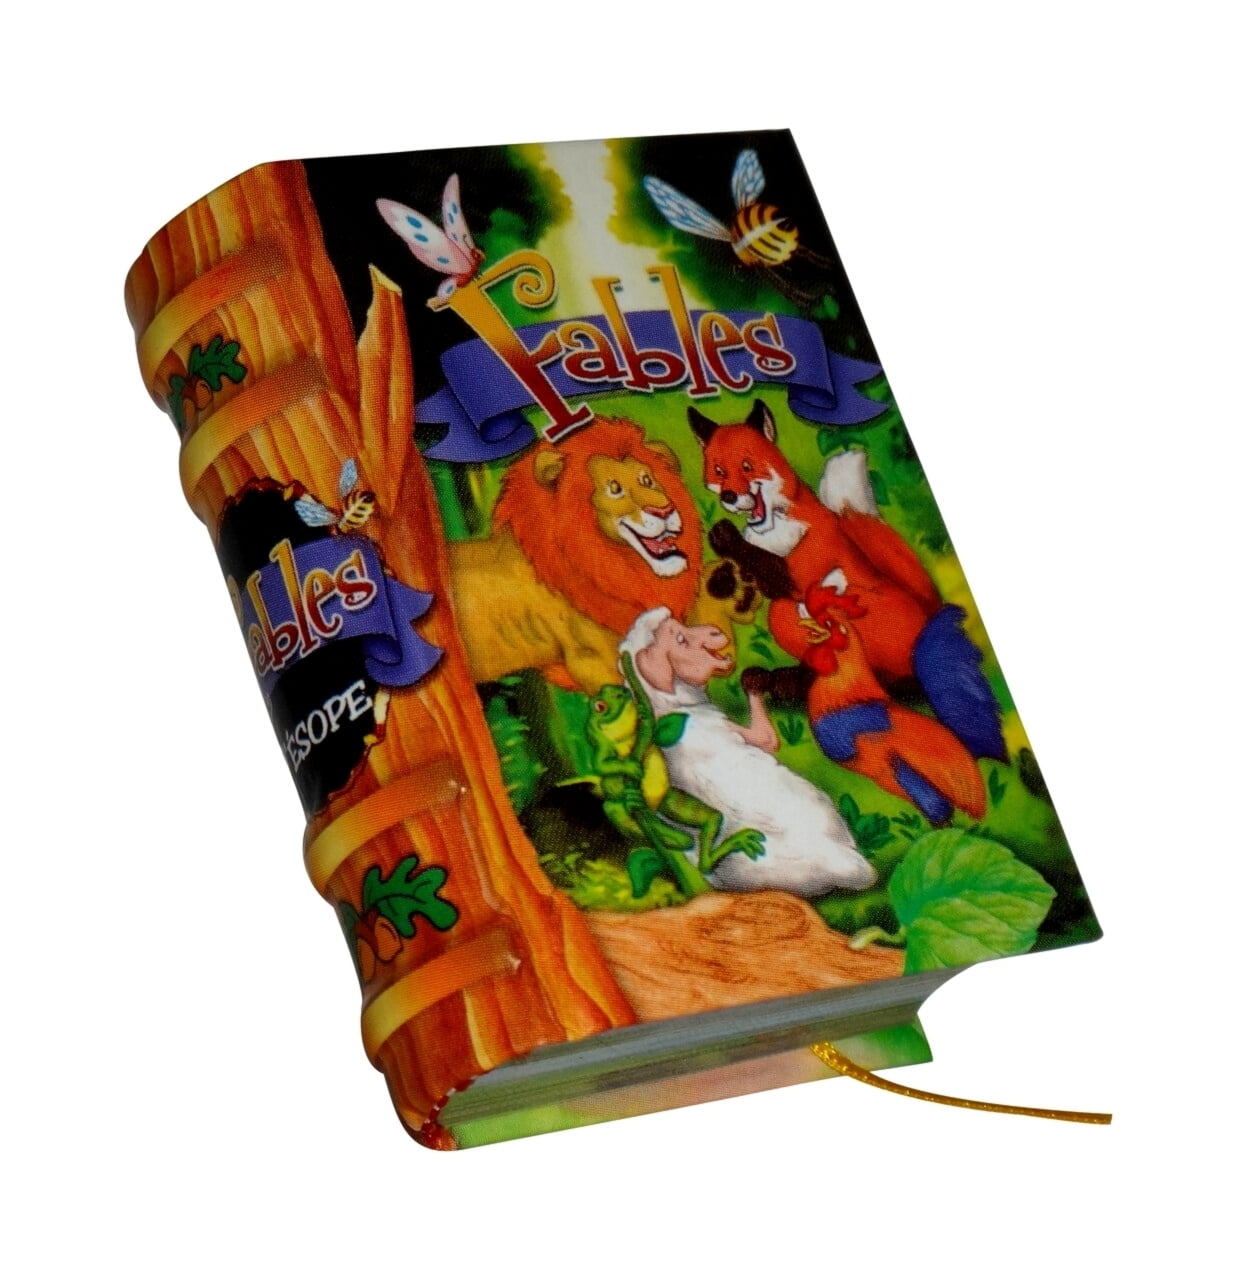 Fables_French-miniature-book-libro